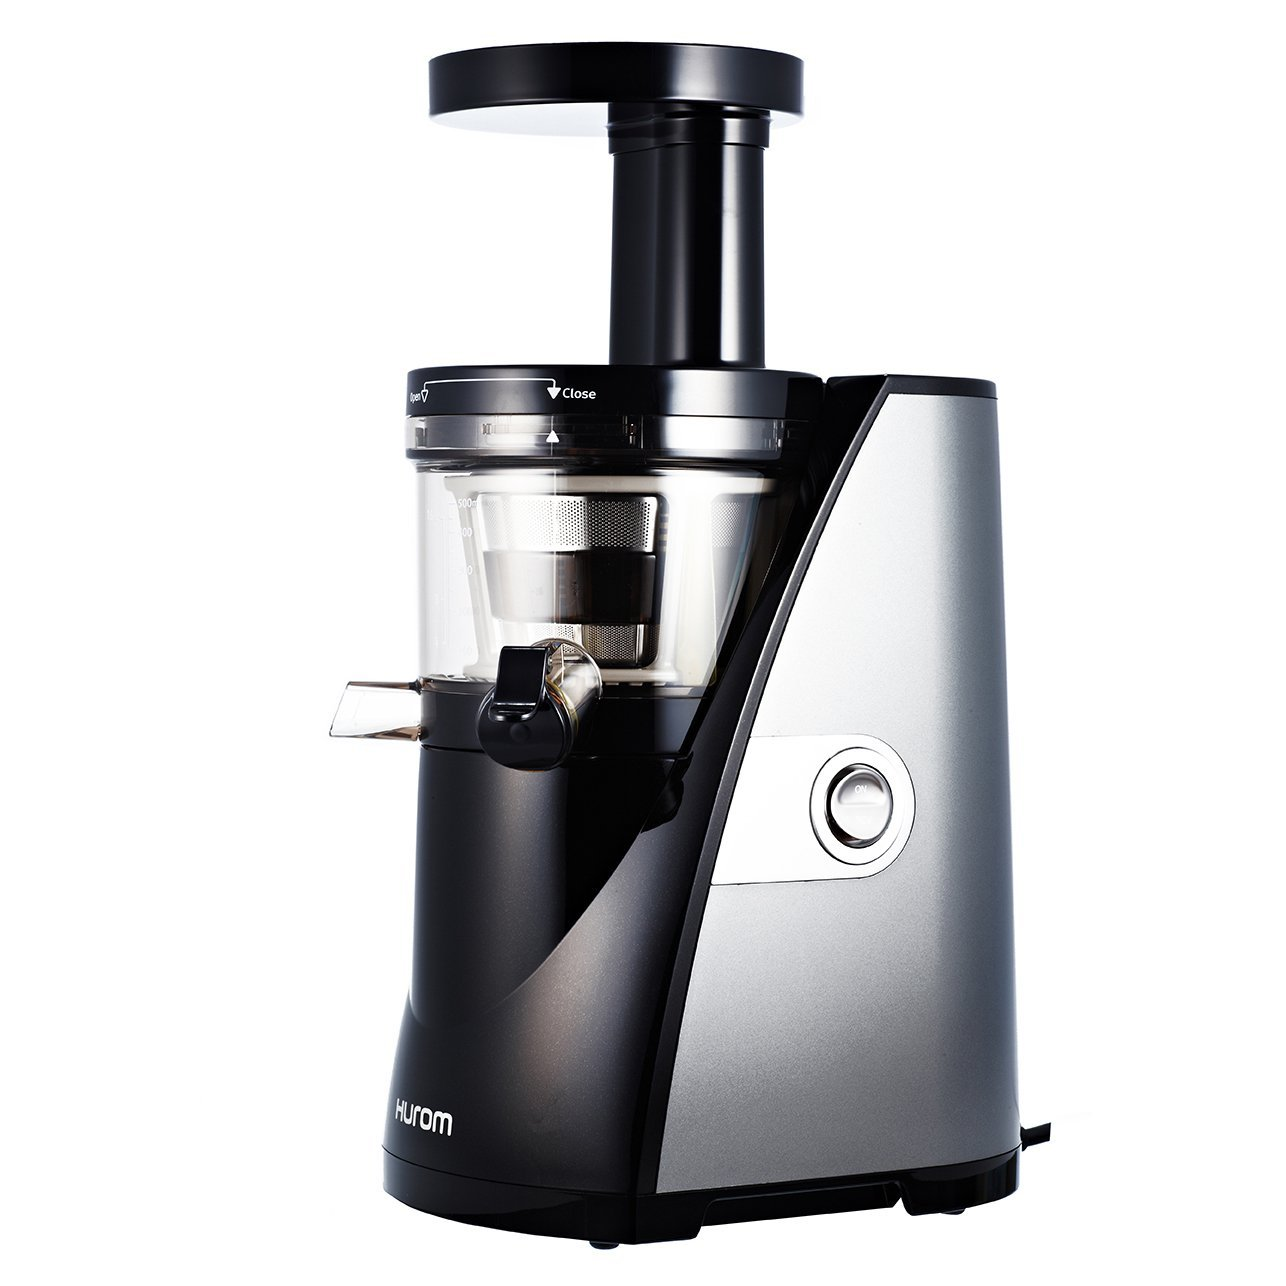 Hurom Slow Juicer Bagus Ga : 5 Best Hurom Juicer Reviews UPDATED: 2018 The Home Savant